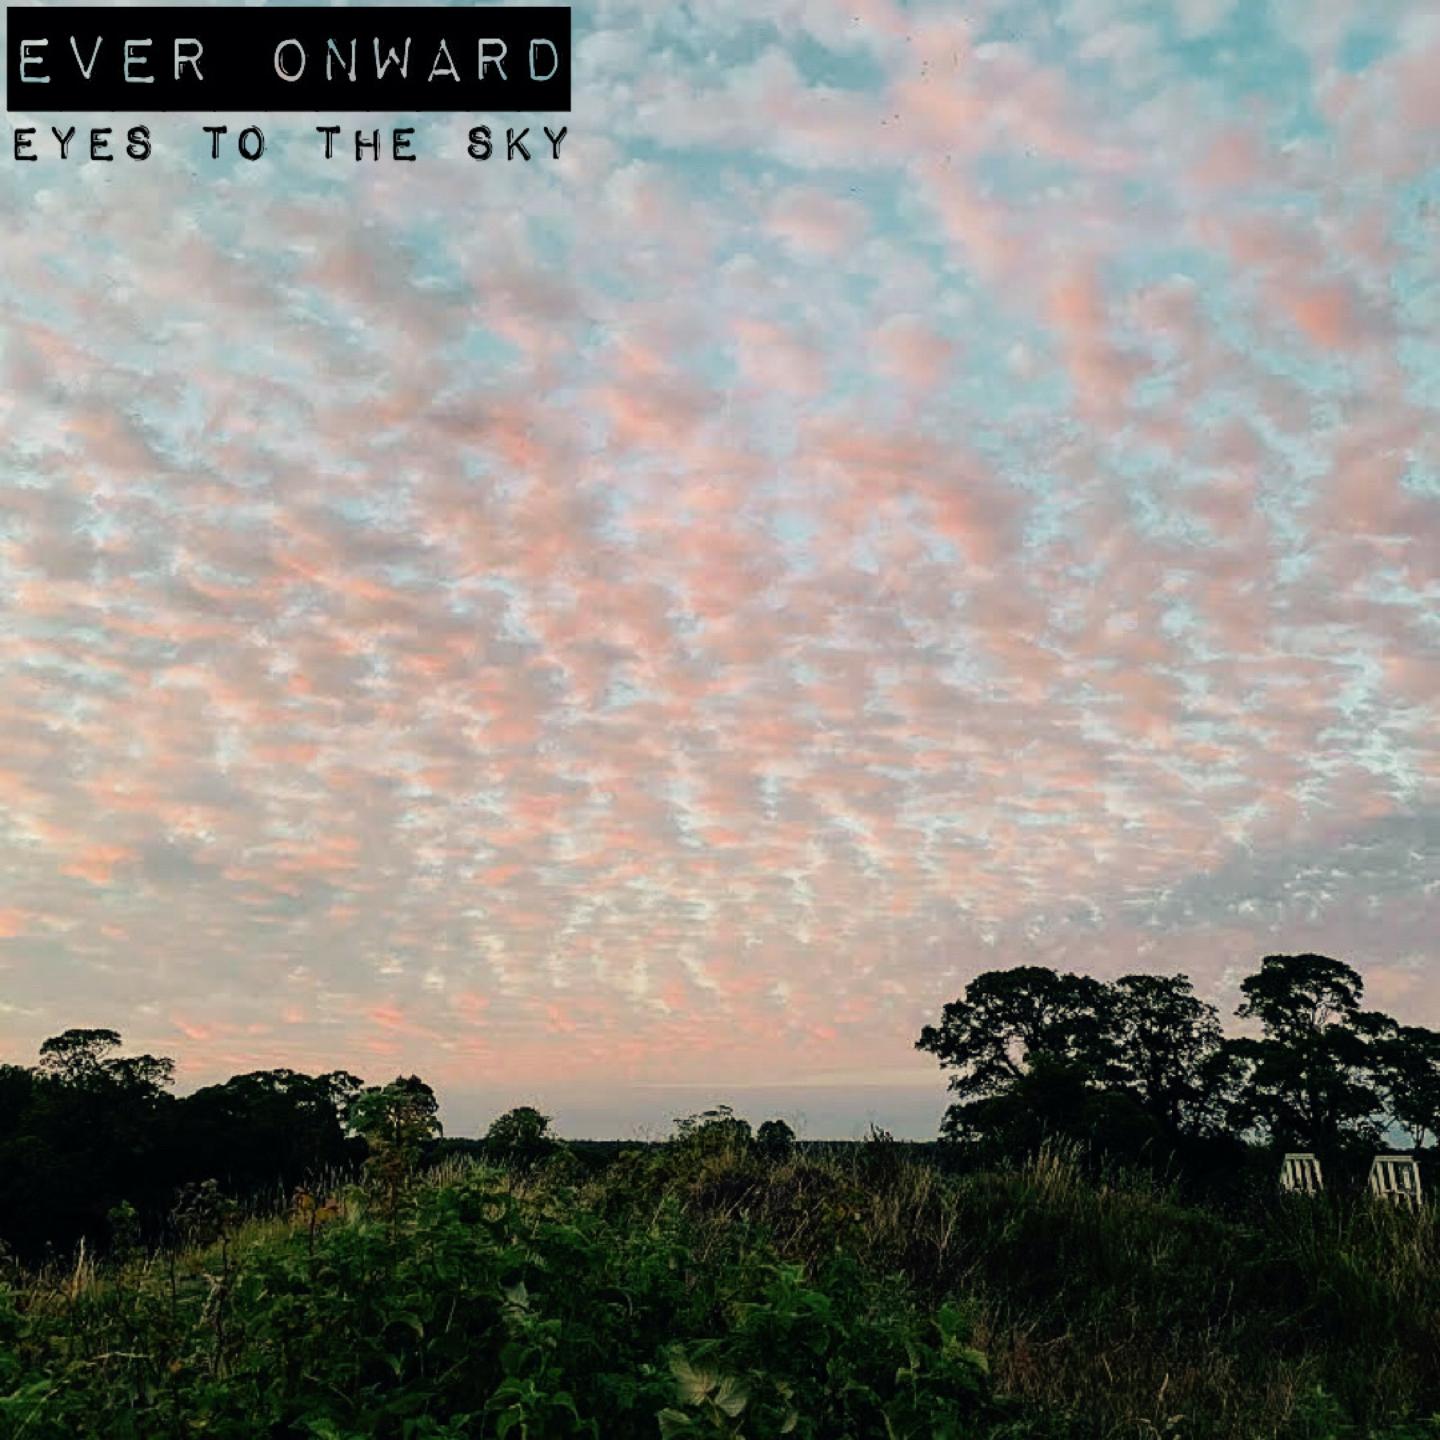 Ever Onward - Eyes to the Sky Image